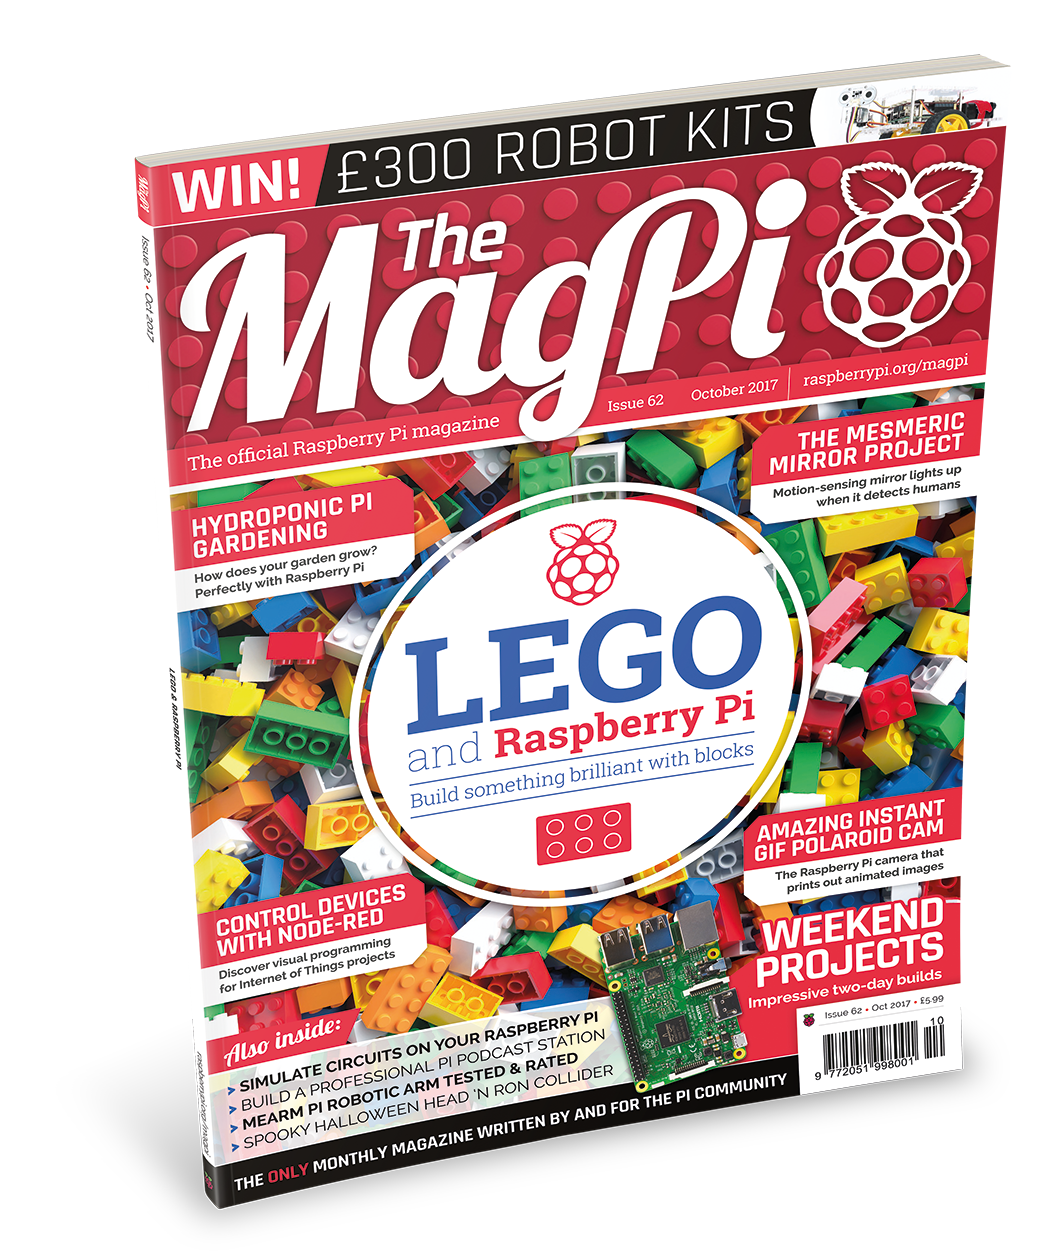 Front cover of The MagPi 62 LEGO